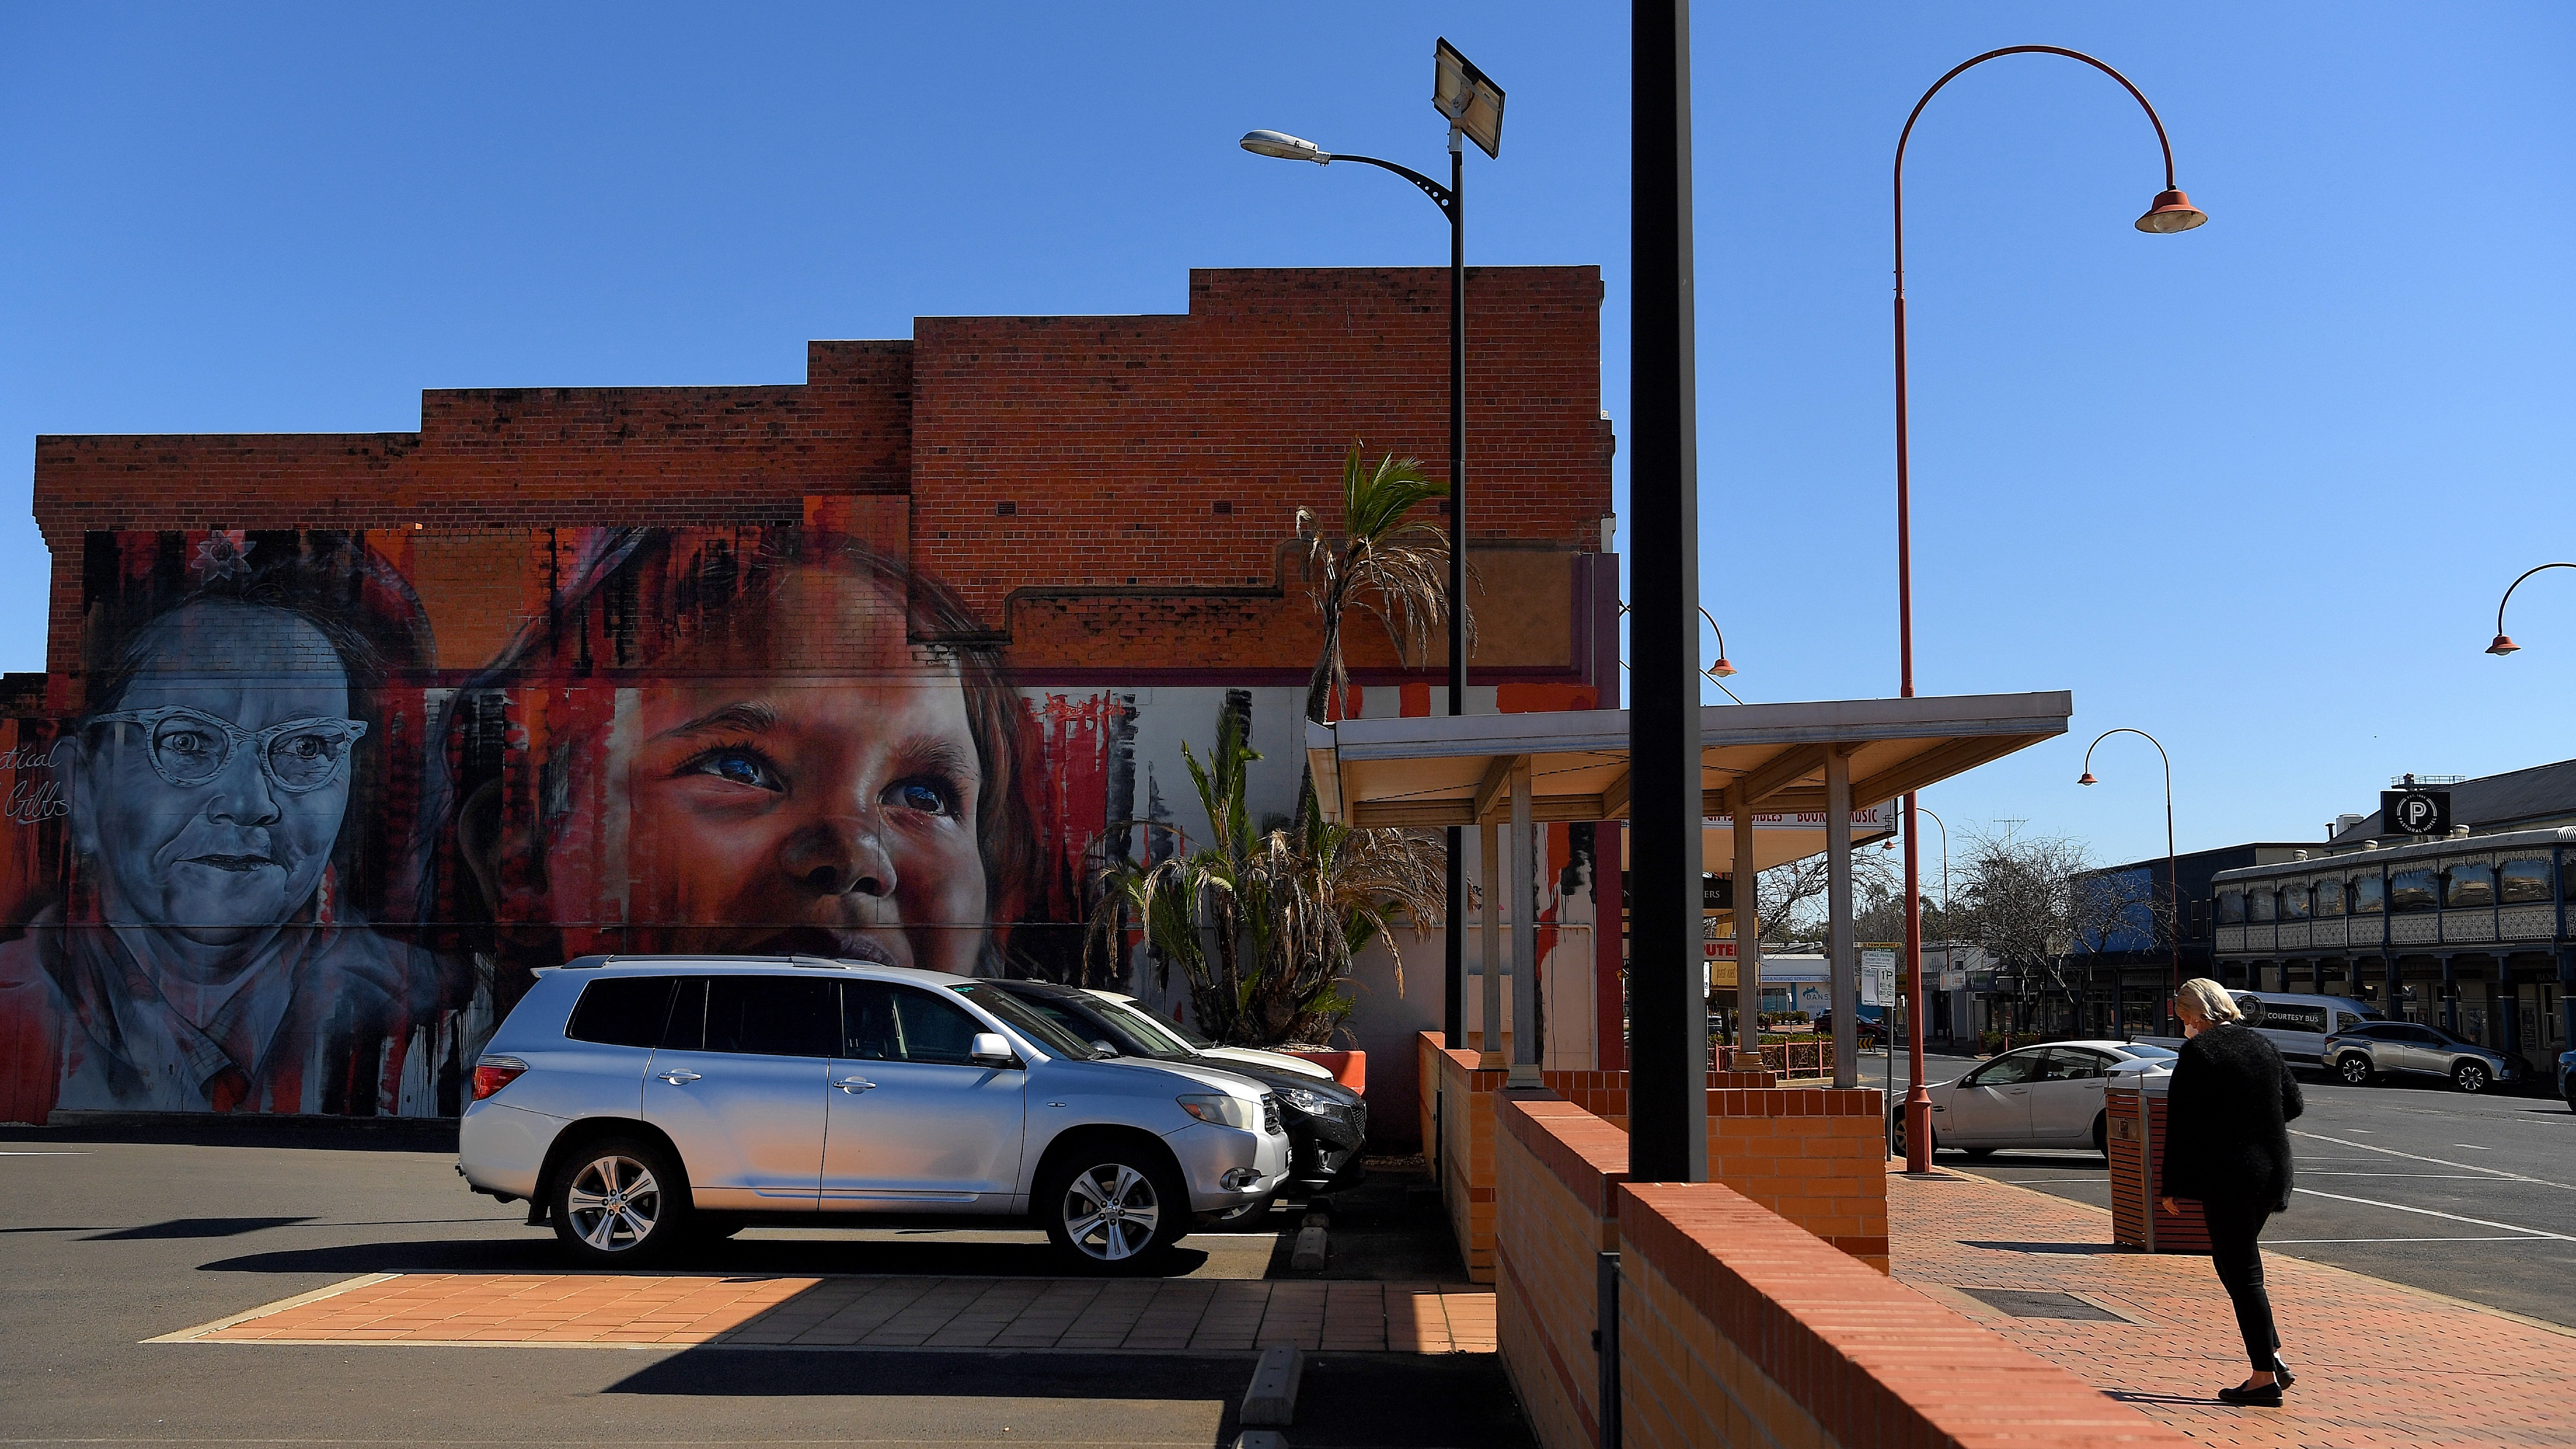 During the statewide lockdown a woman walks past a mural on the side of a building on Talbragar street in Dubbo, NSW.